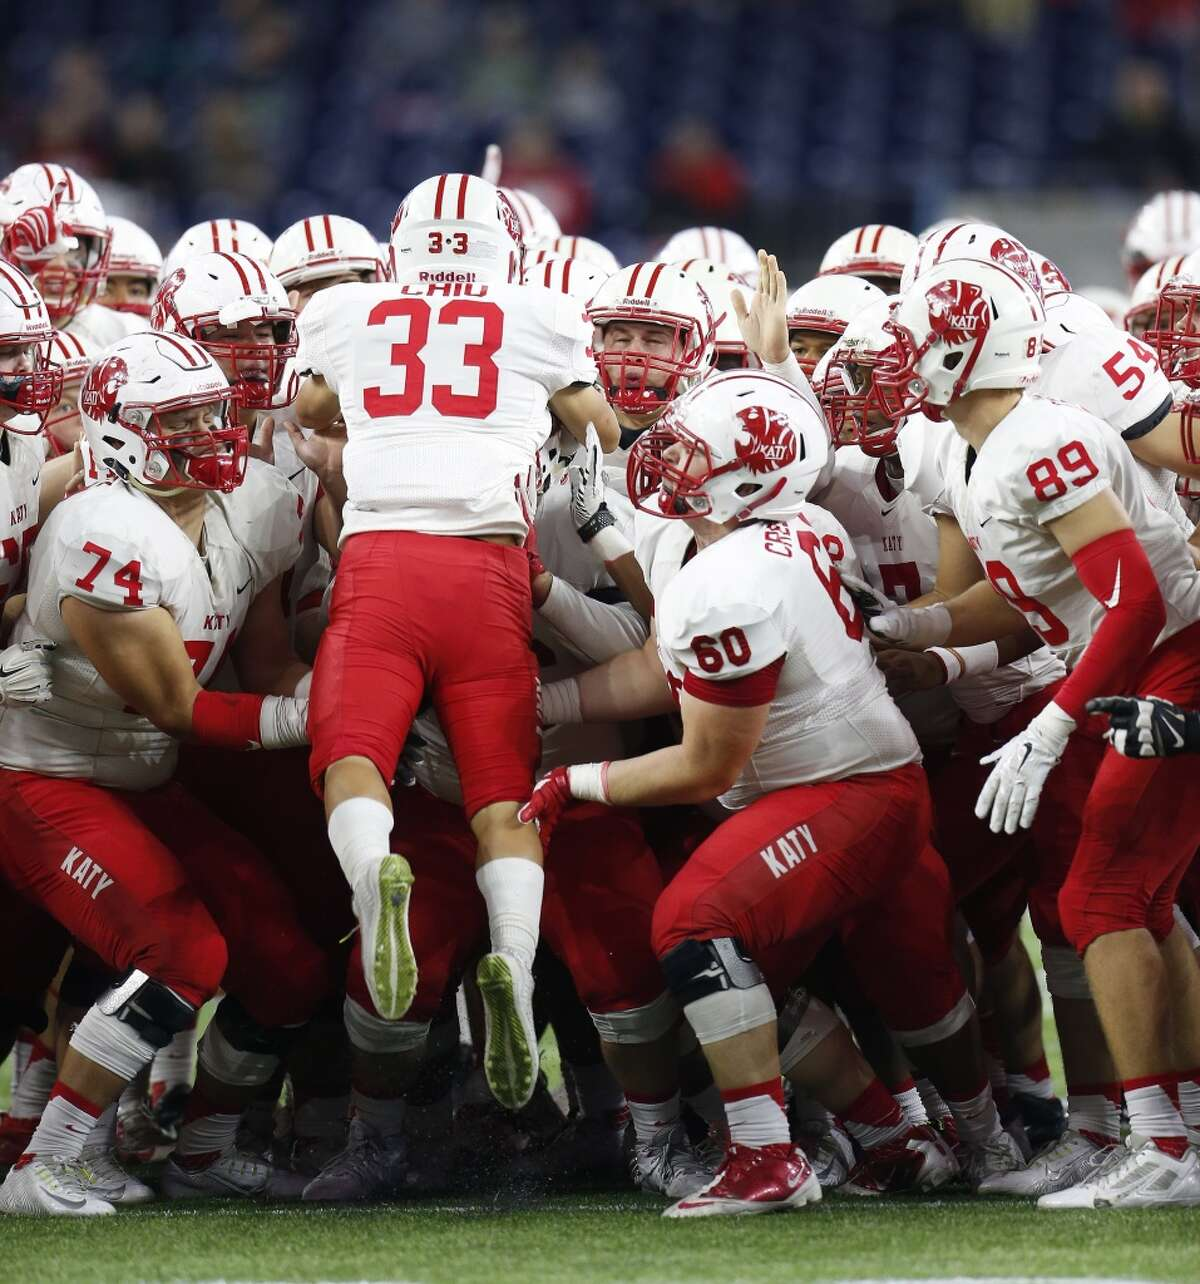 This year's postseason has looked a lot like last year's for Katy. The Tigers beat Westside in the first round both years and clinched the regional title with wins over Manvel both times, too. For the second year in a row, Katy will meet Cibolo Steele in the state semifinals. Katy won, 27-20, in overtime last year. The Tigers also beat Steele in the semifinals in 2012 (45-33).